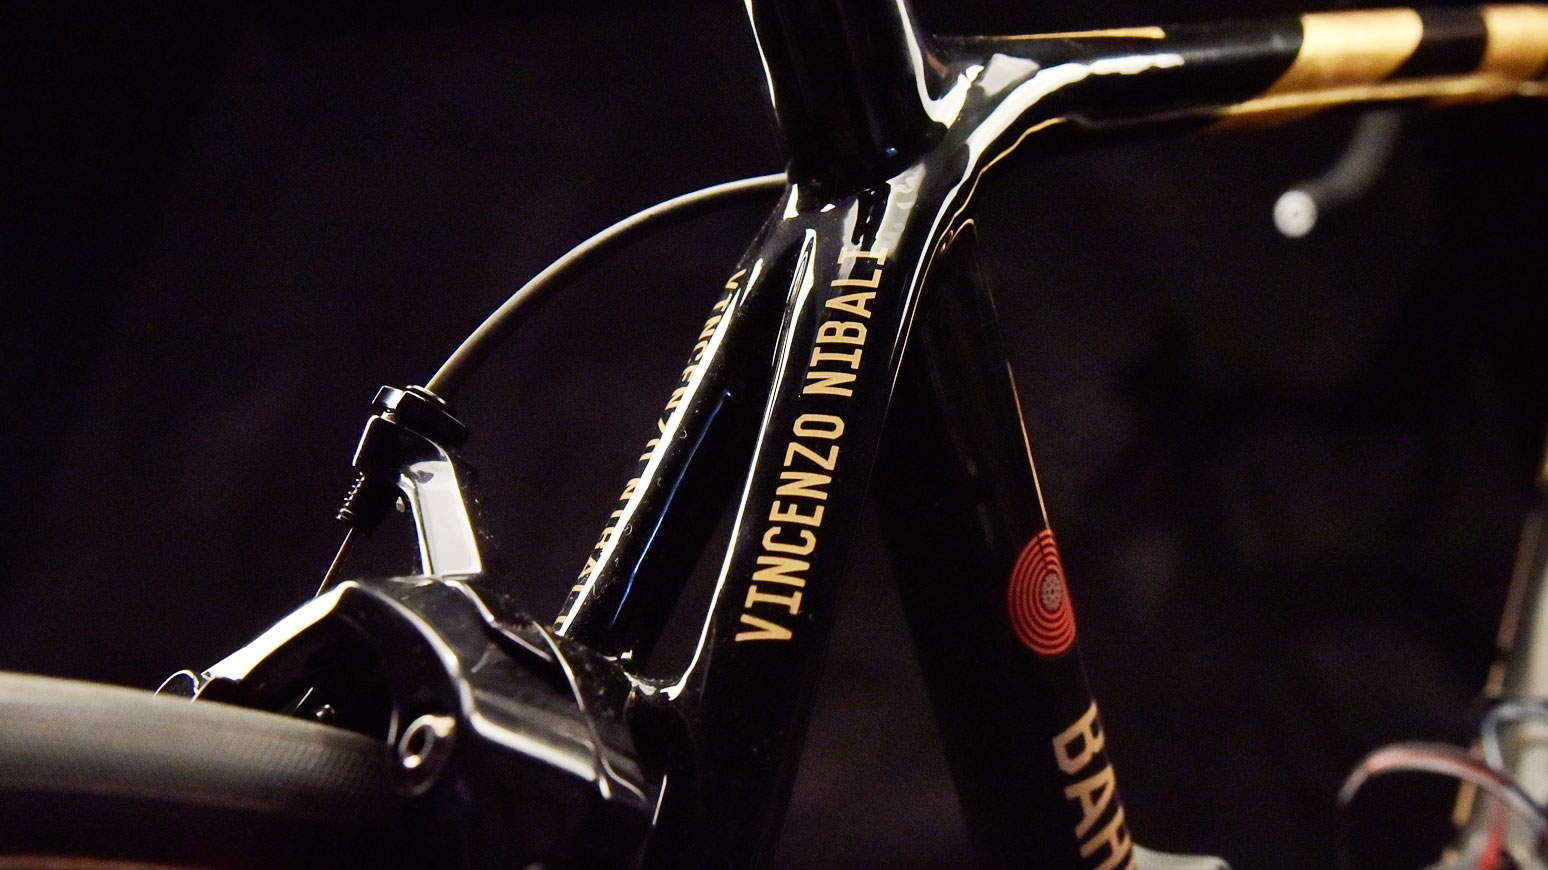 Merida-Scultura-Test-Nibali